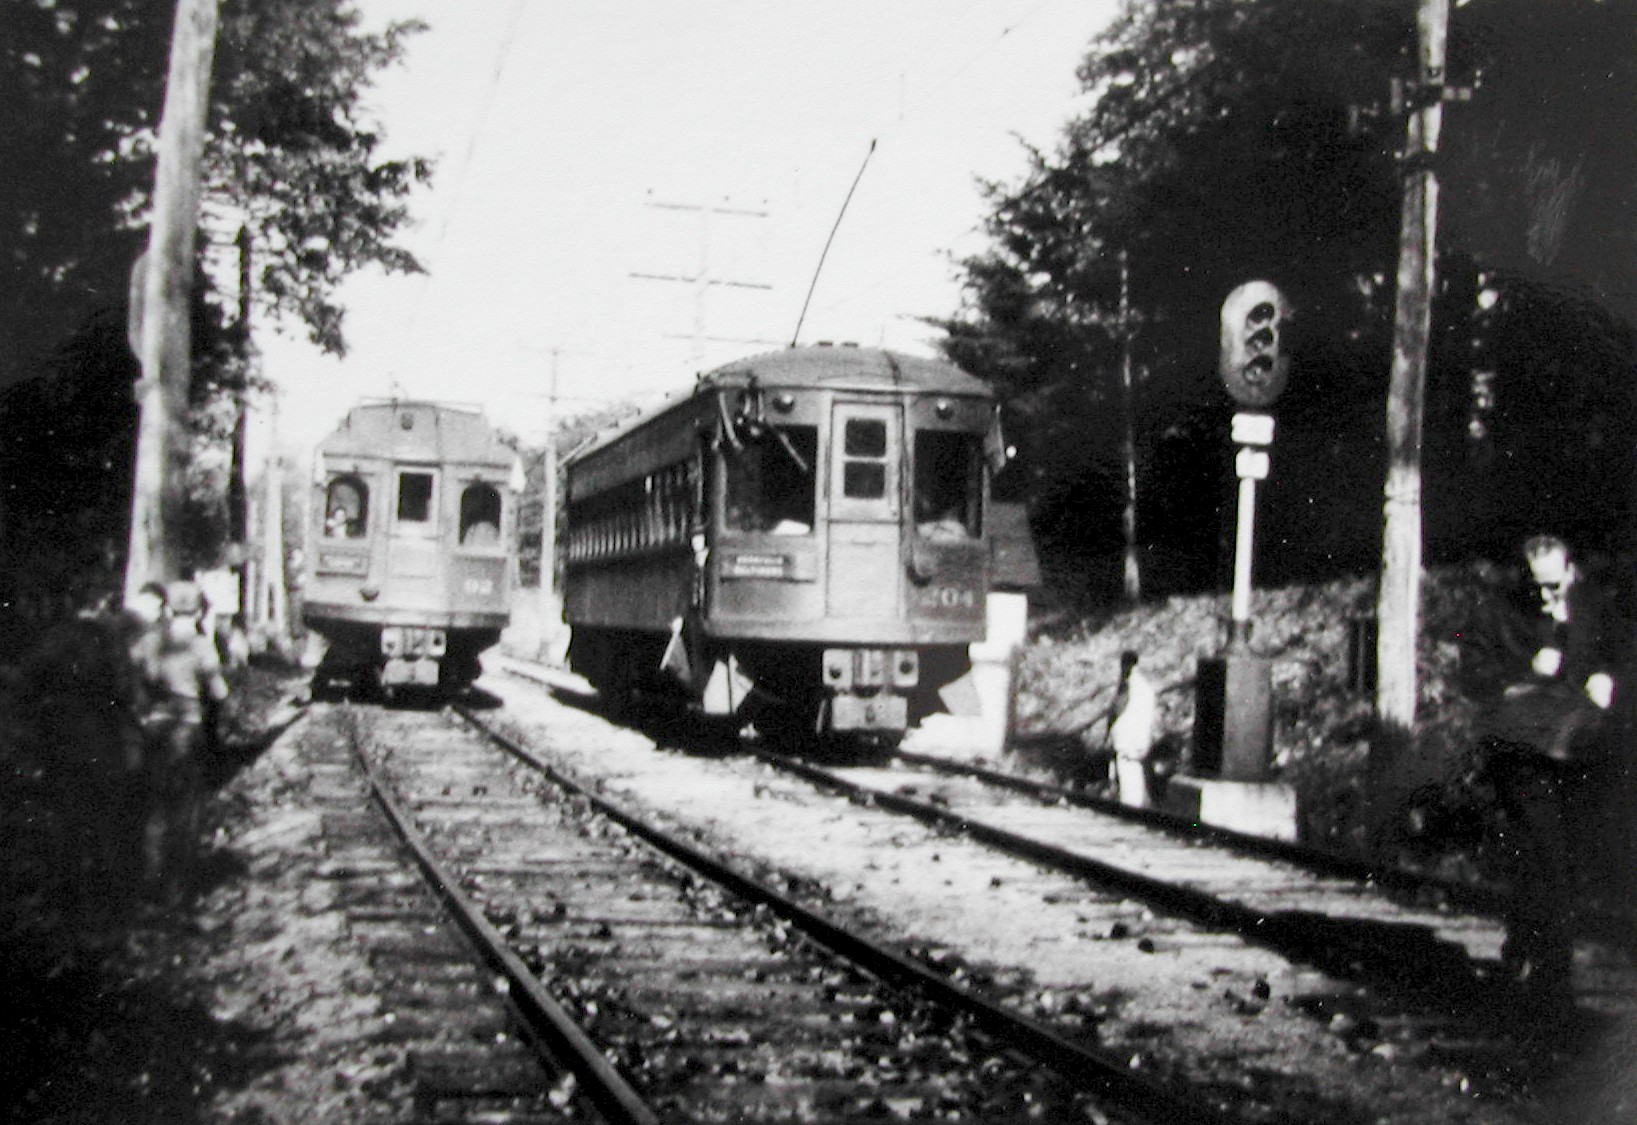 Baltimore & Annapolis Railroad Car #92 & Car #204 at Arnold Station. Arnold, Maryland Date: 1945. Source: Unkown.